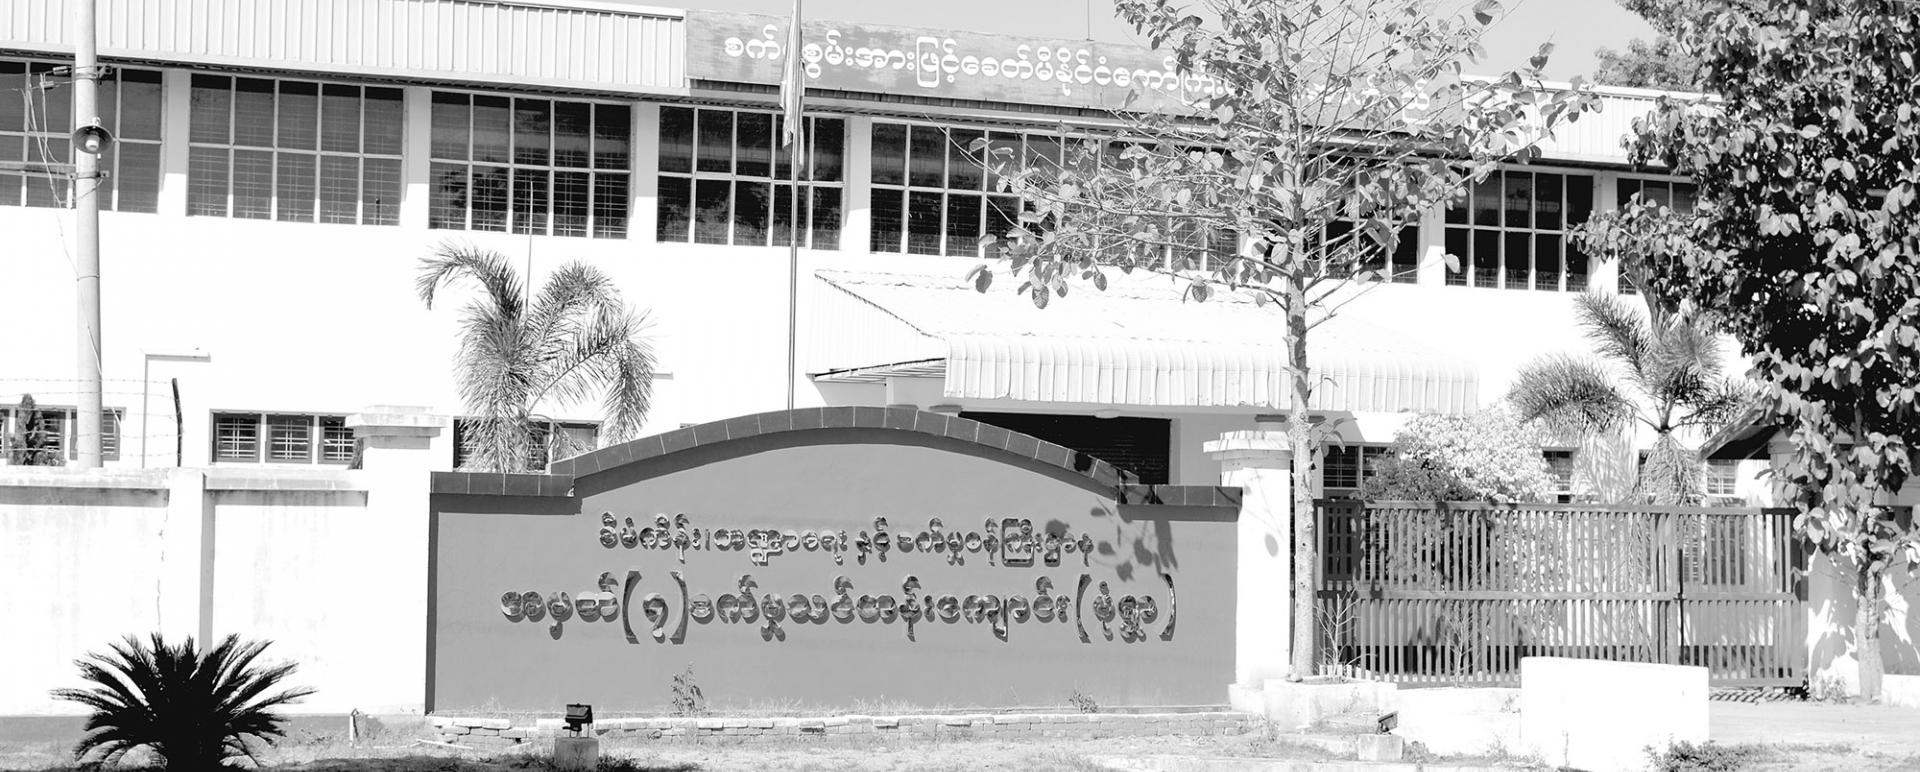 In collaboration with Indian Government, Myanmar government plans to open Technical High School (THS) in Monyawa Township, Sagaing Region